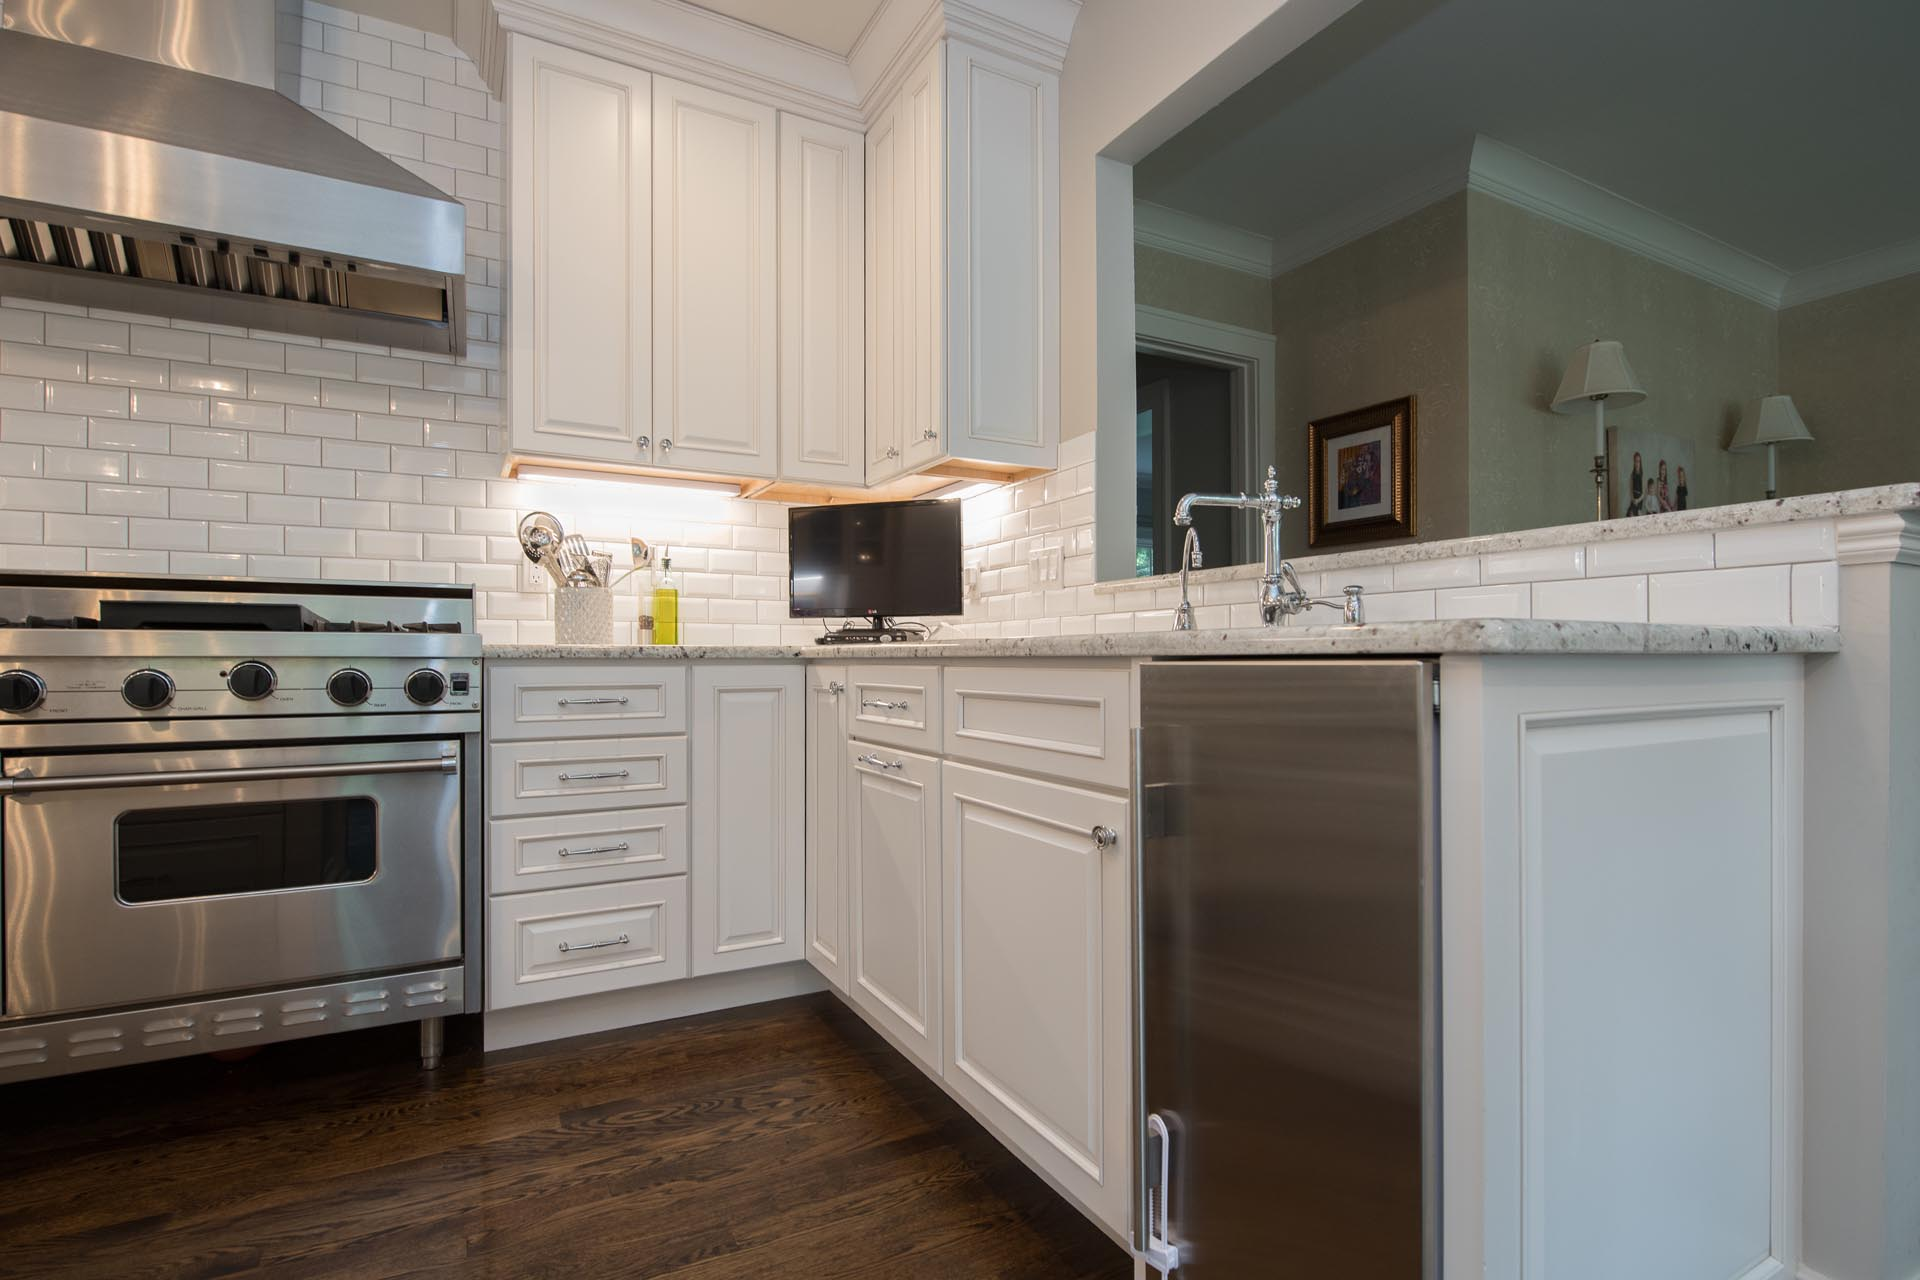 Faucet and Sink | Kitchen Renovation | Saginaw, MI